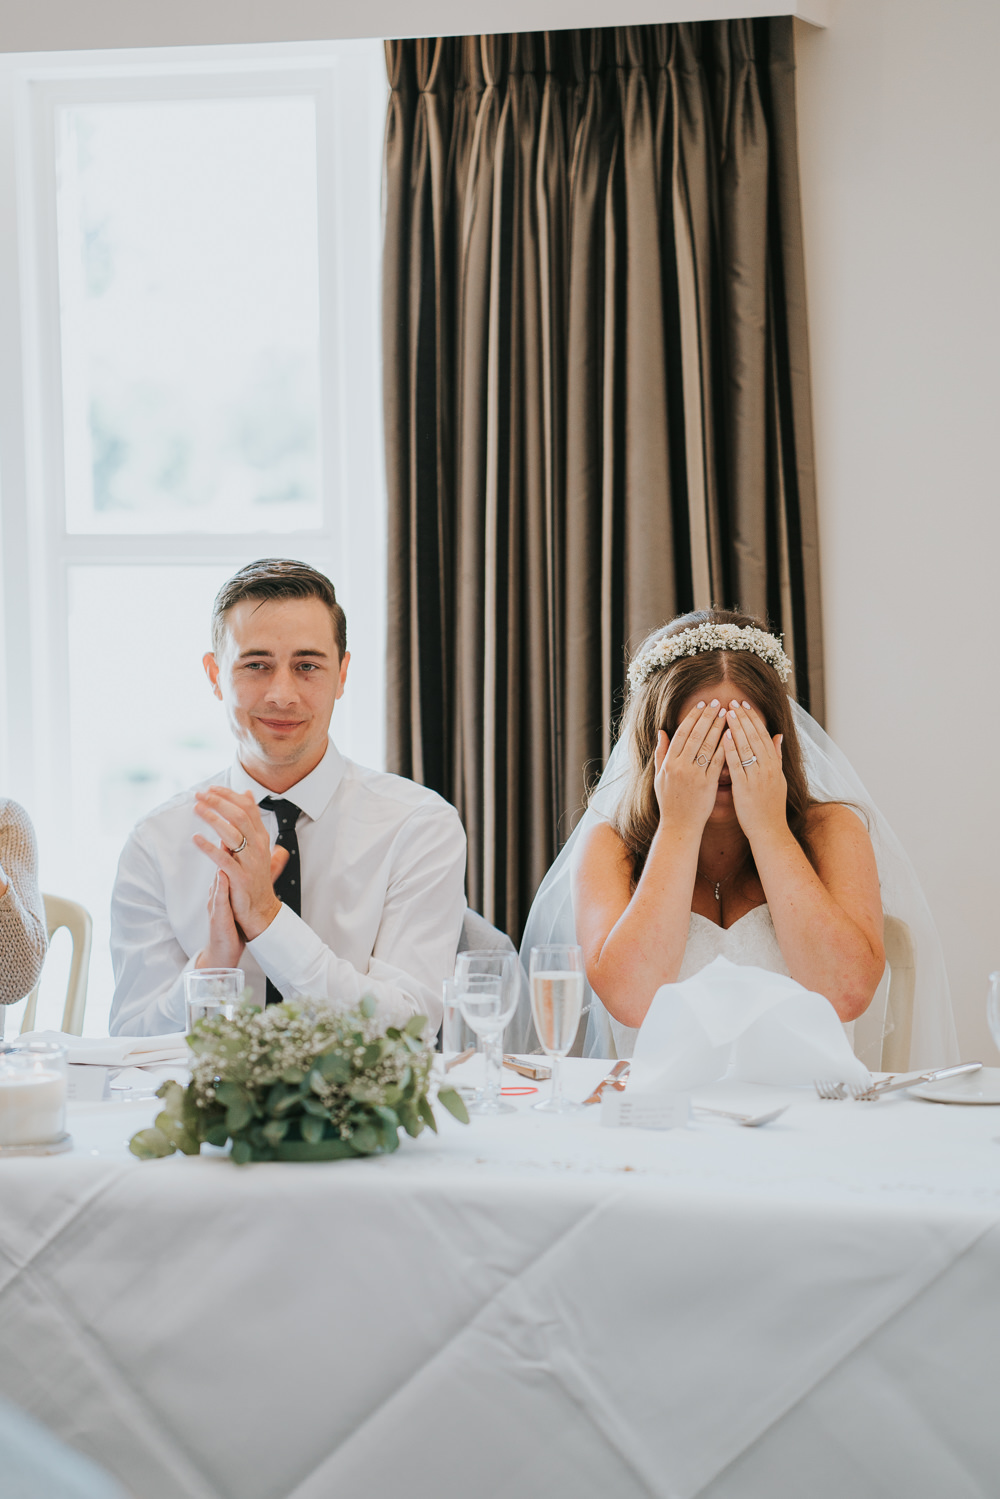 Intimate Outdoor Natural Relaxed Laid Back Summer Reception Dinner Speeches Bride Groom | Prested Hall Wedding Grace Elizabeth Photography